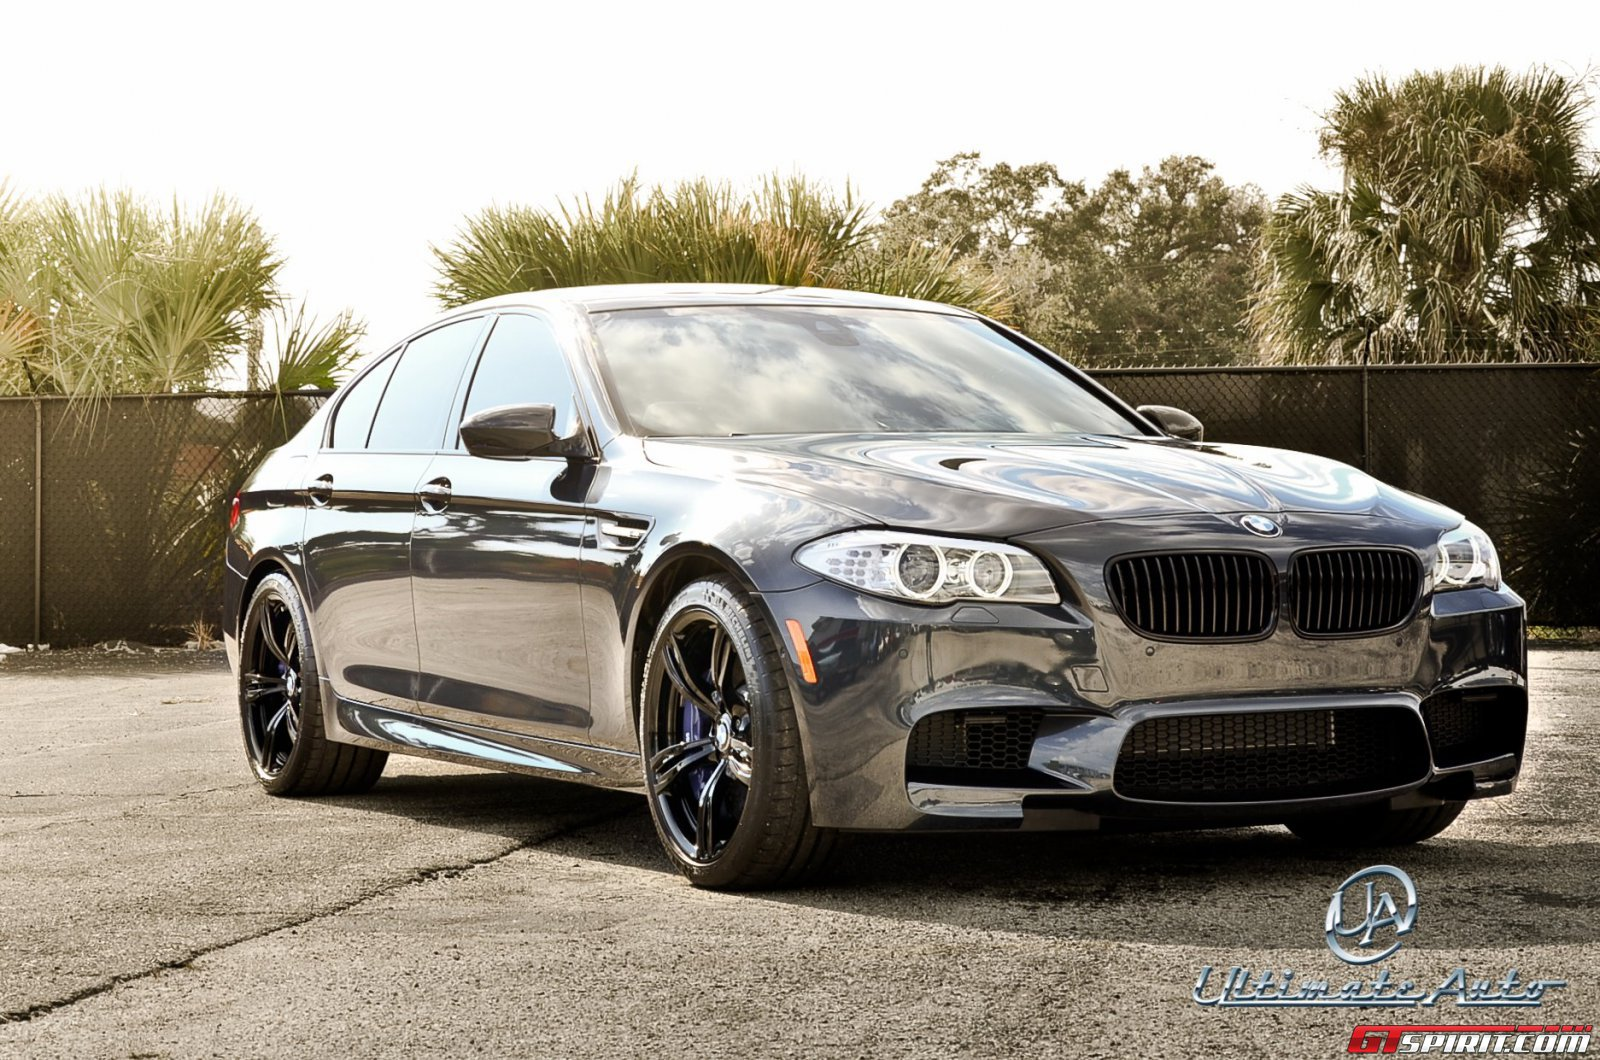 Ultimate Aero F10 BMW M5